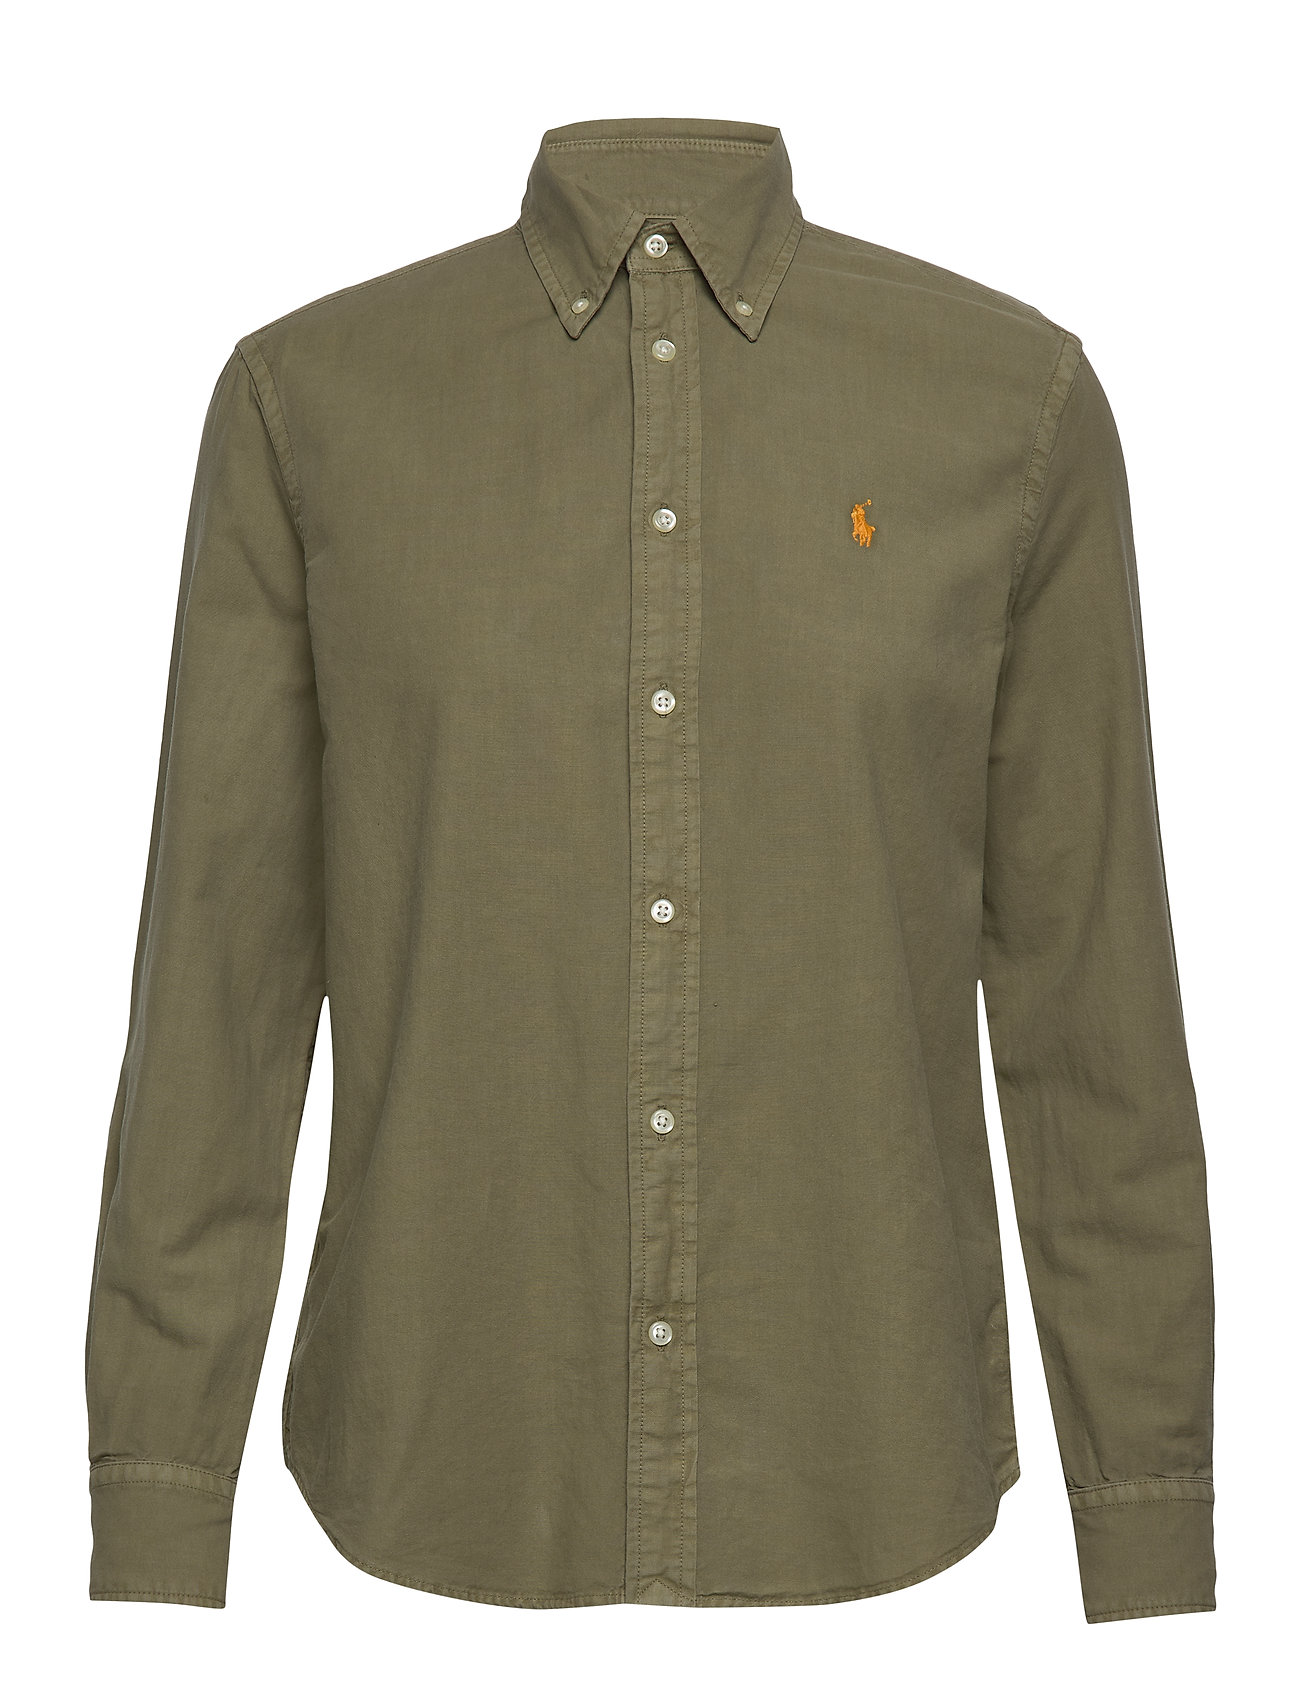 Polo Ralph Lauren Relaxed Fit Oxford Shirt - BASIC OLIVE